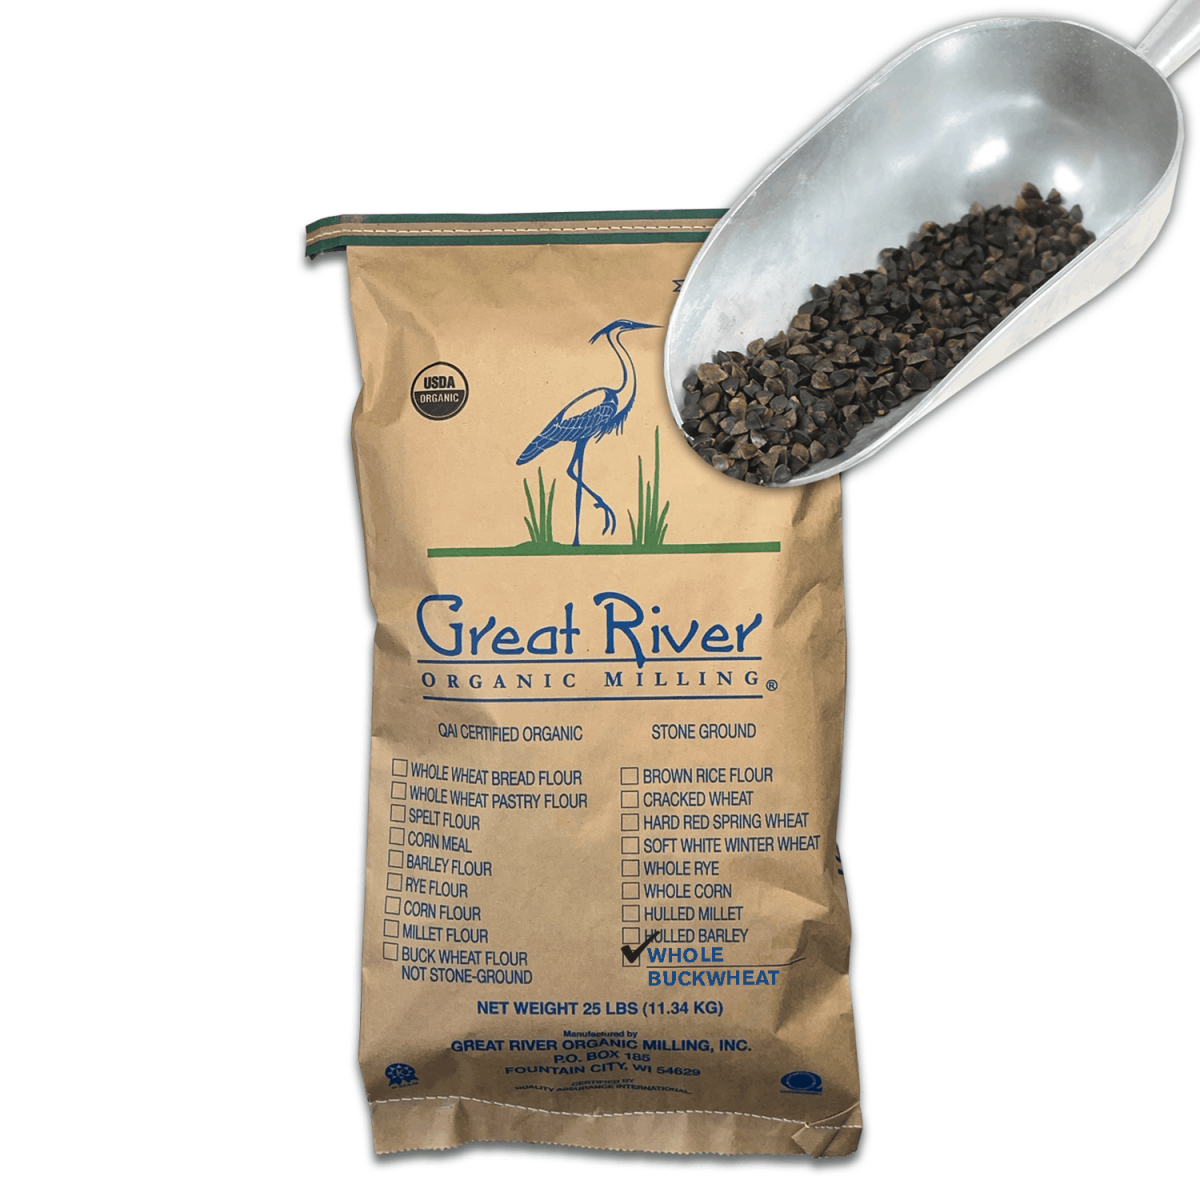 GRAIN_BUCKWHEAT_25LB_BAG